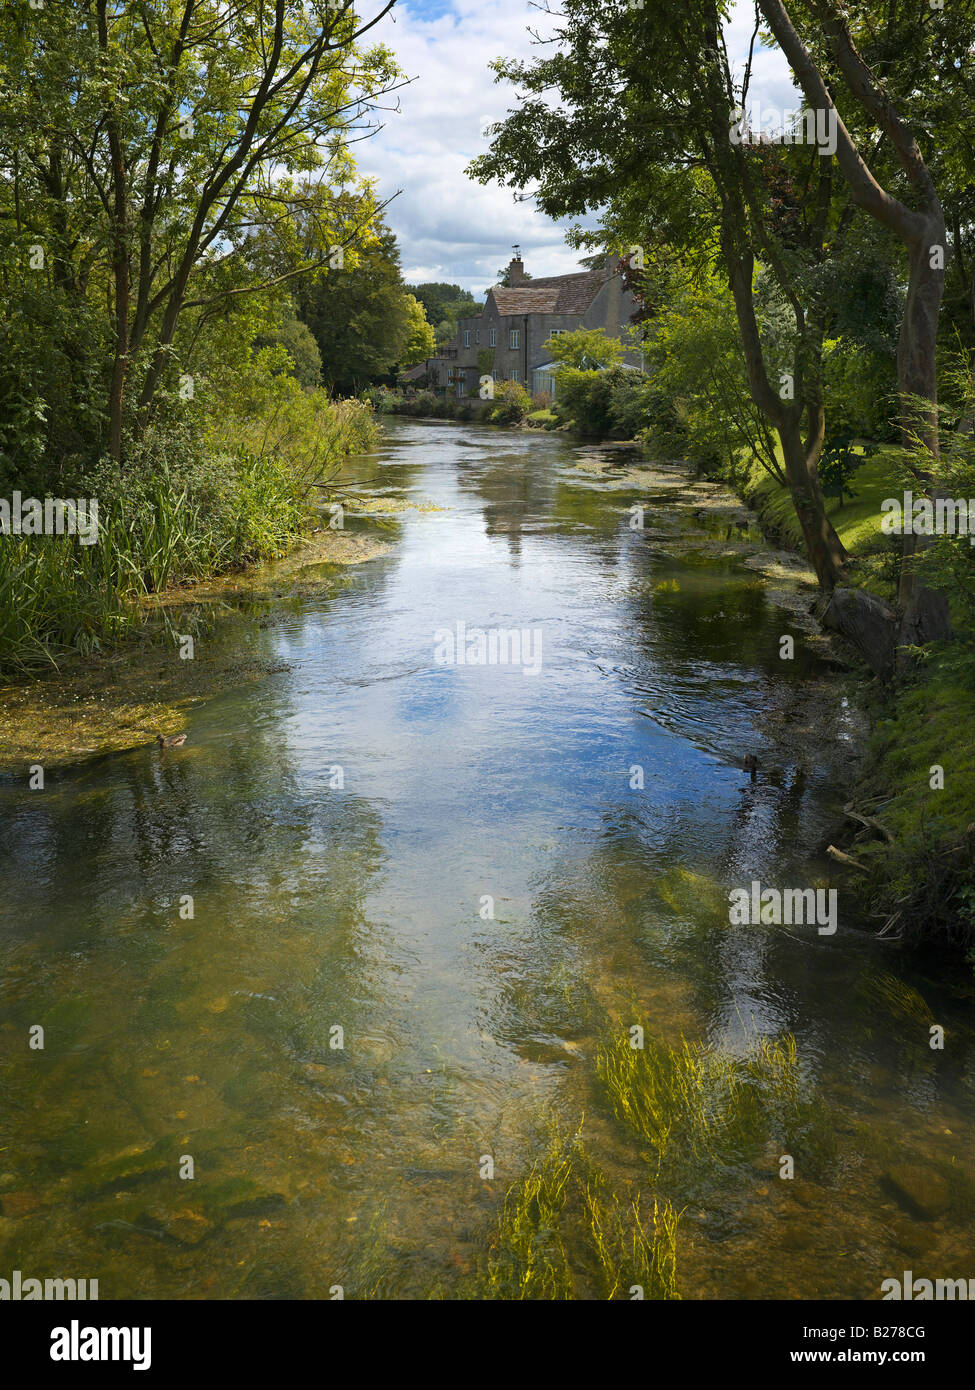 River Coln at Fairford in the Cotswolds - Stock Image